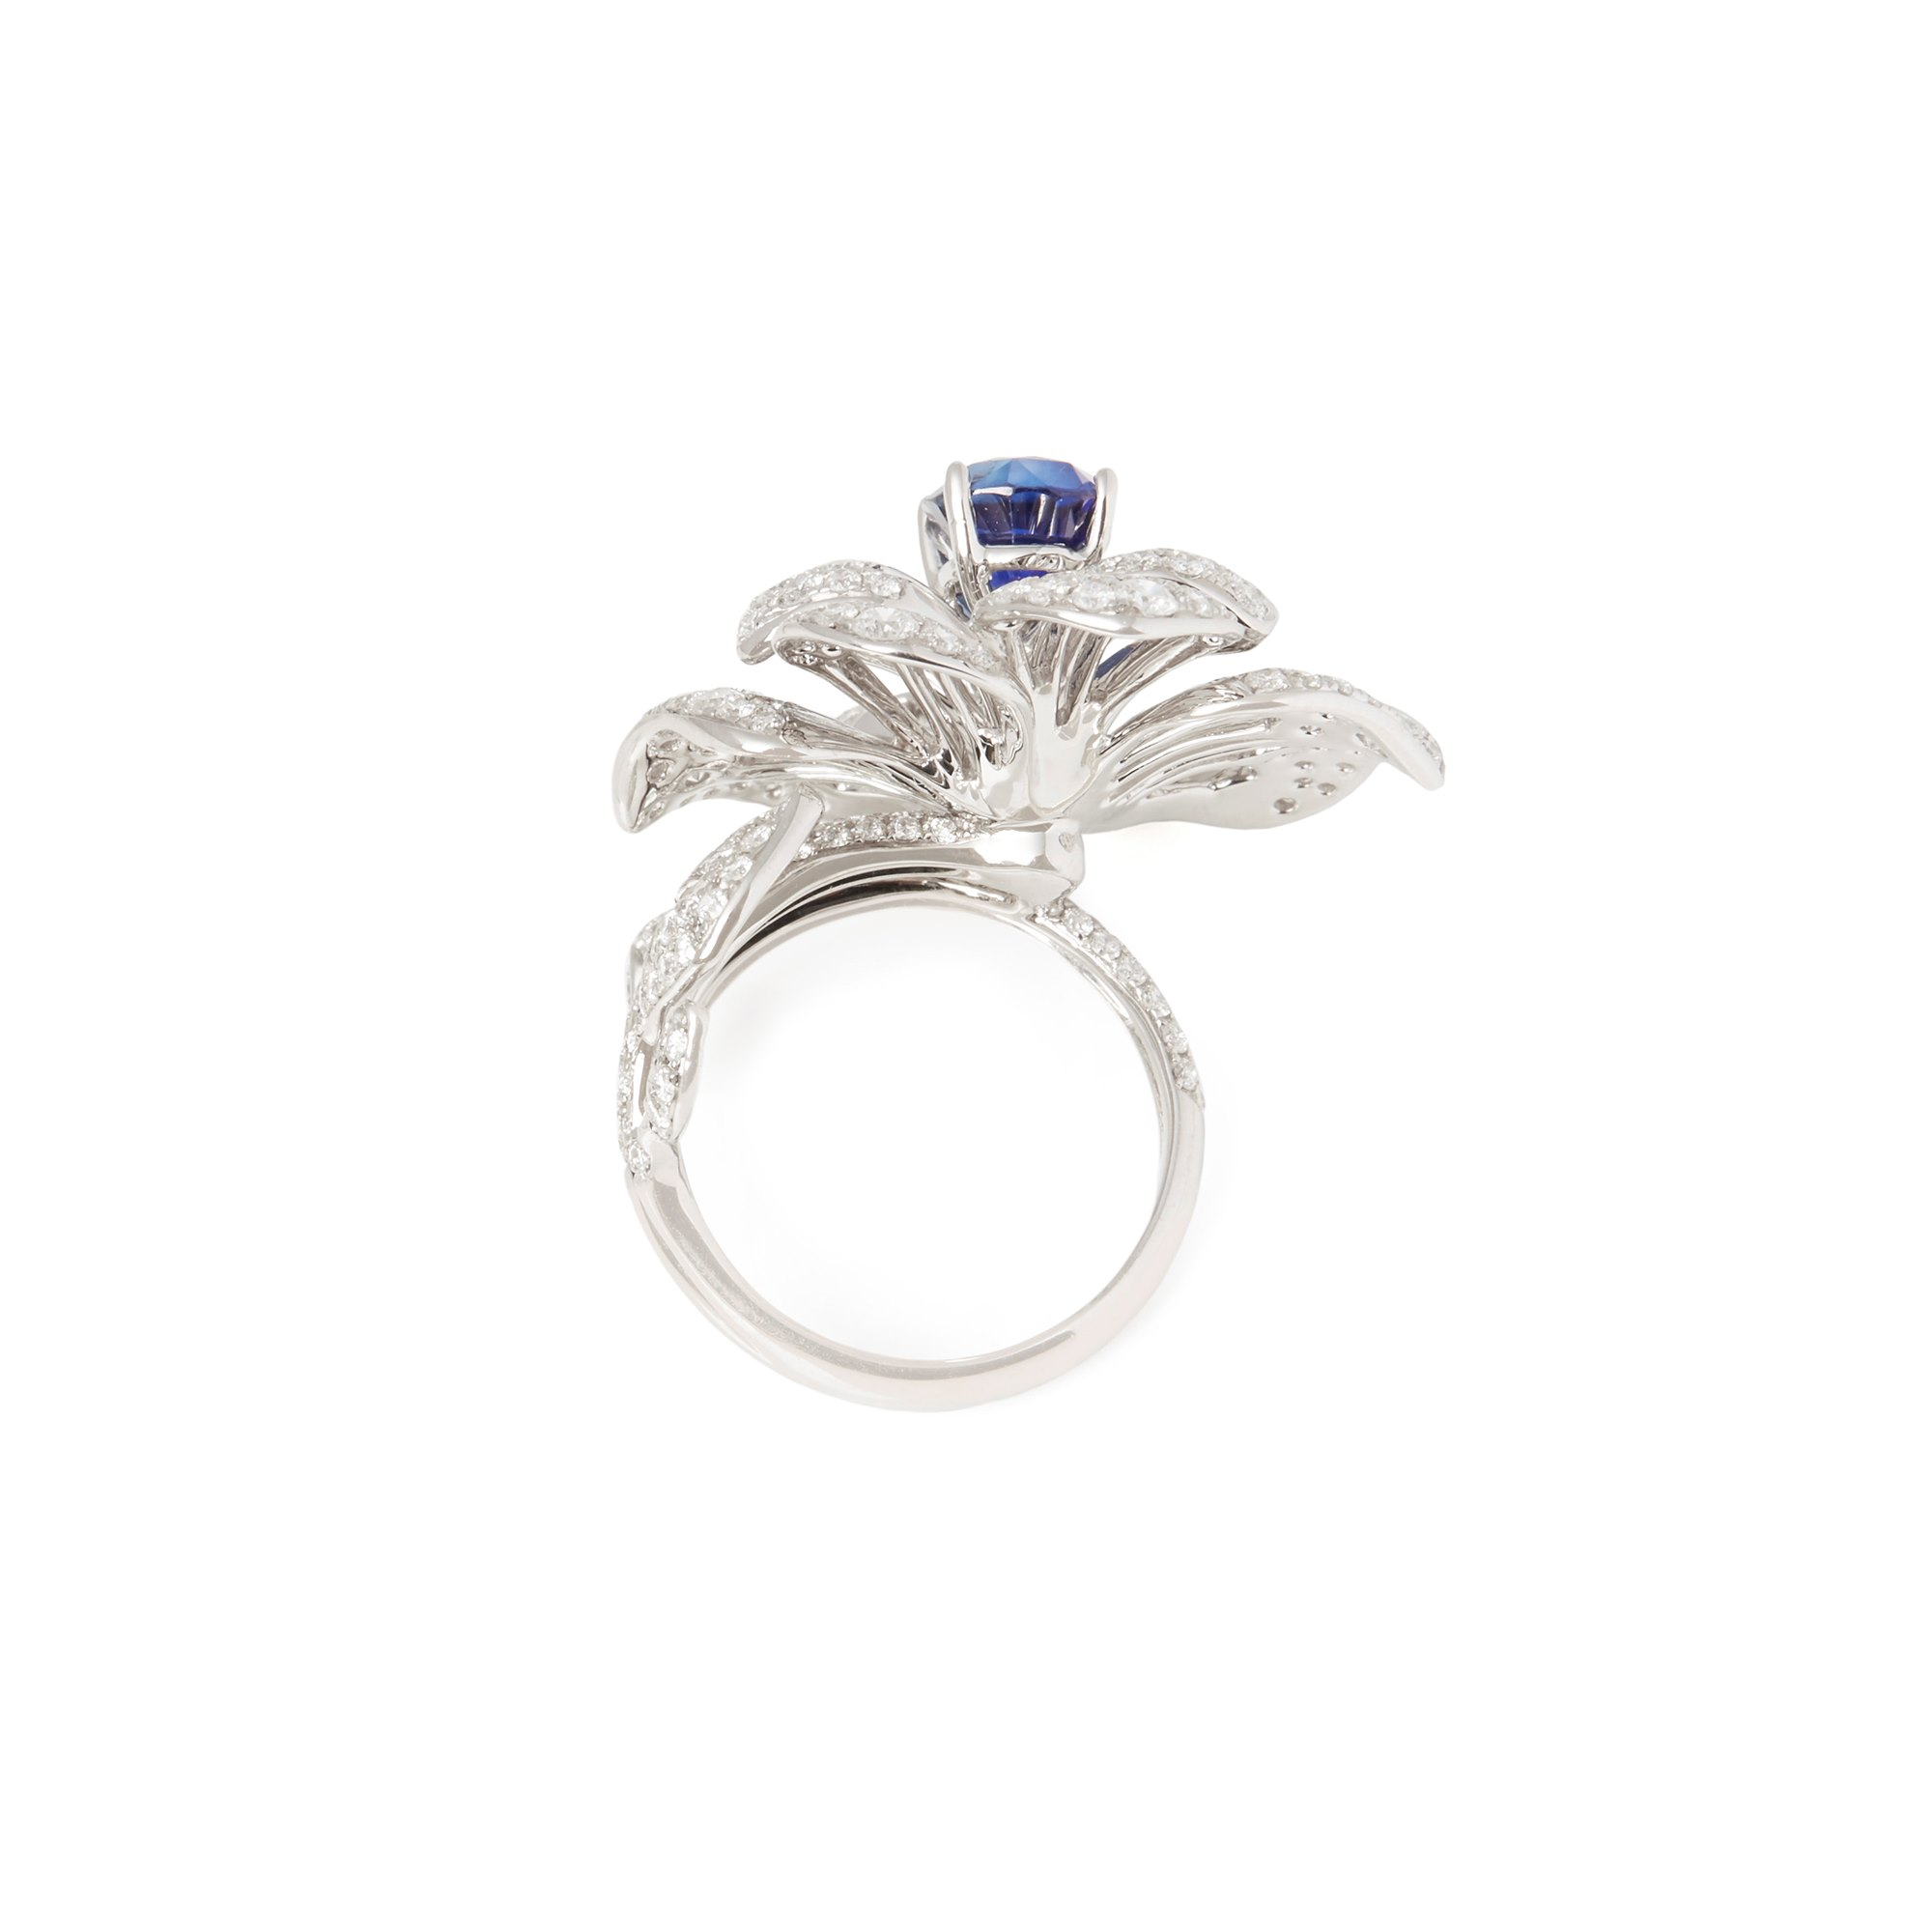 David Jerome Certified 2.84ct Oval Cut Sapphire and Diamond 18ct Gold Ring